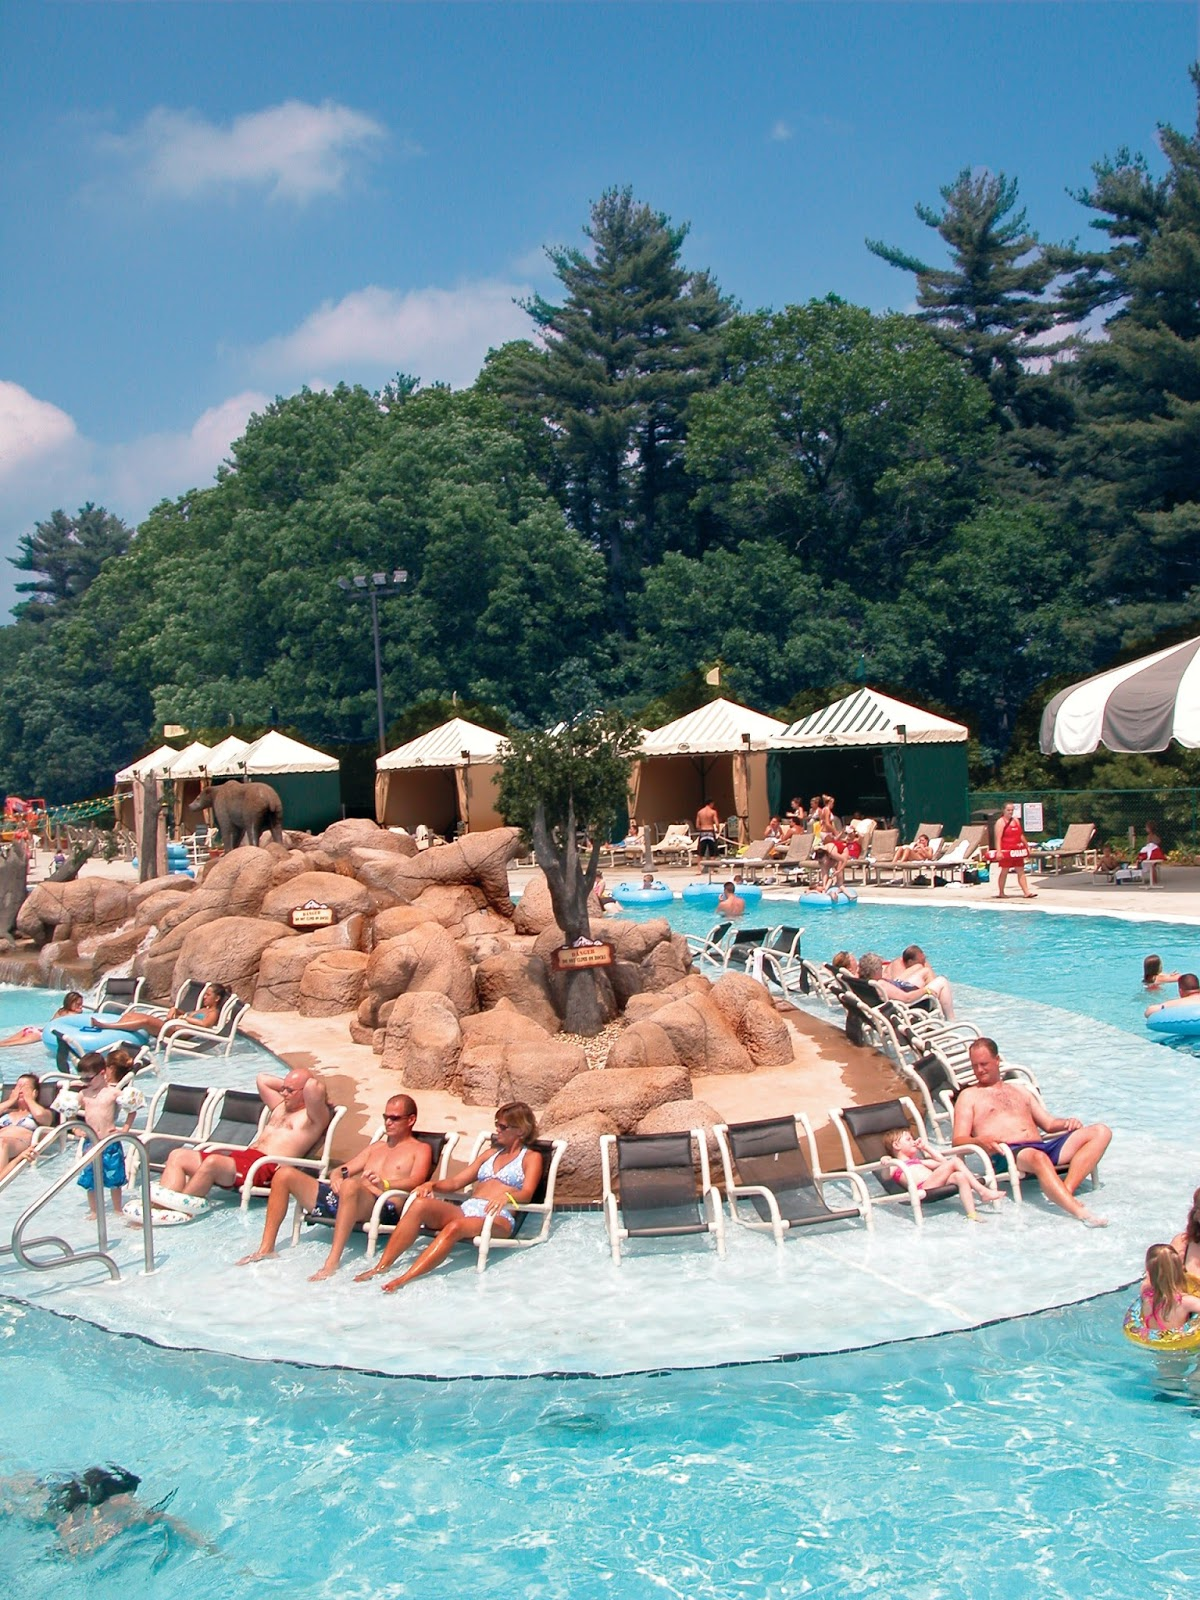 The Wilderness Resort is home to 4 outdoor water parks  Lake Wilderness   New Frontier  Lost World and Cubby s Cove Outdoor  From pools to thrill  slides. Top 5 Reasons To Visit The Wilderness Resort in The Wisconsin Dells